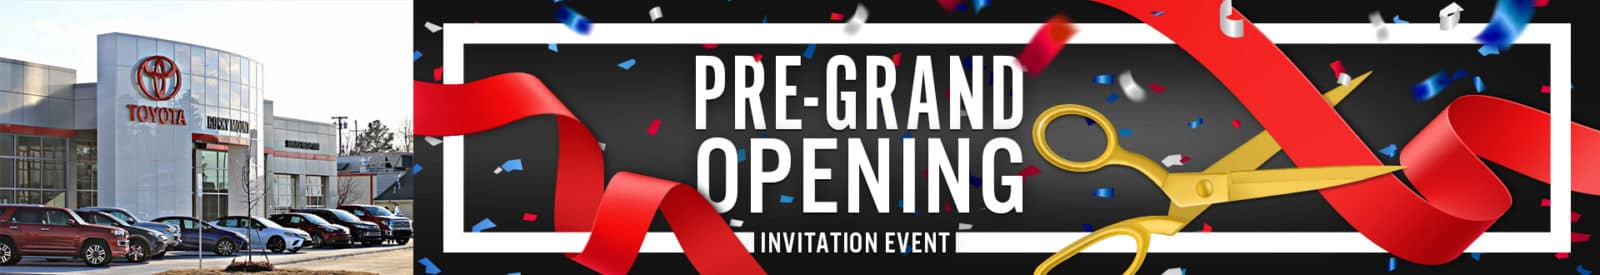 Check out our Pre-Grand Opening Invitation Event for our new building in Rocky Mount NC